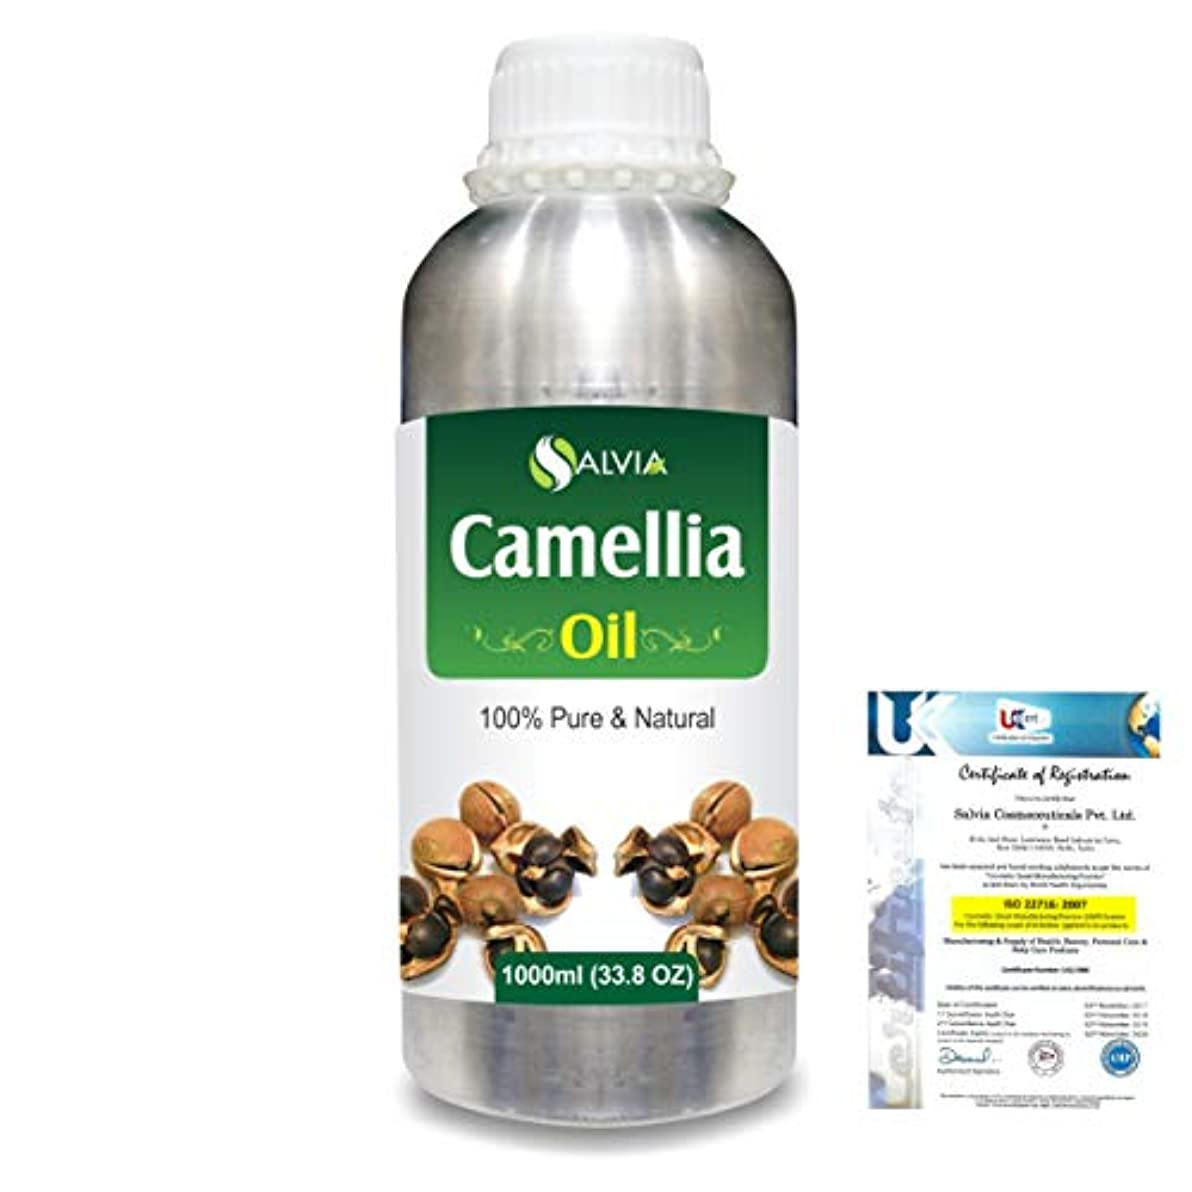 Camellia (Camellia Sasanqua) 100% Natural Pure Essential Oil 1000ml/33.8fl.oz.